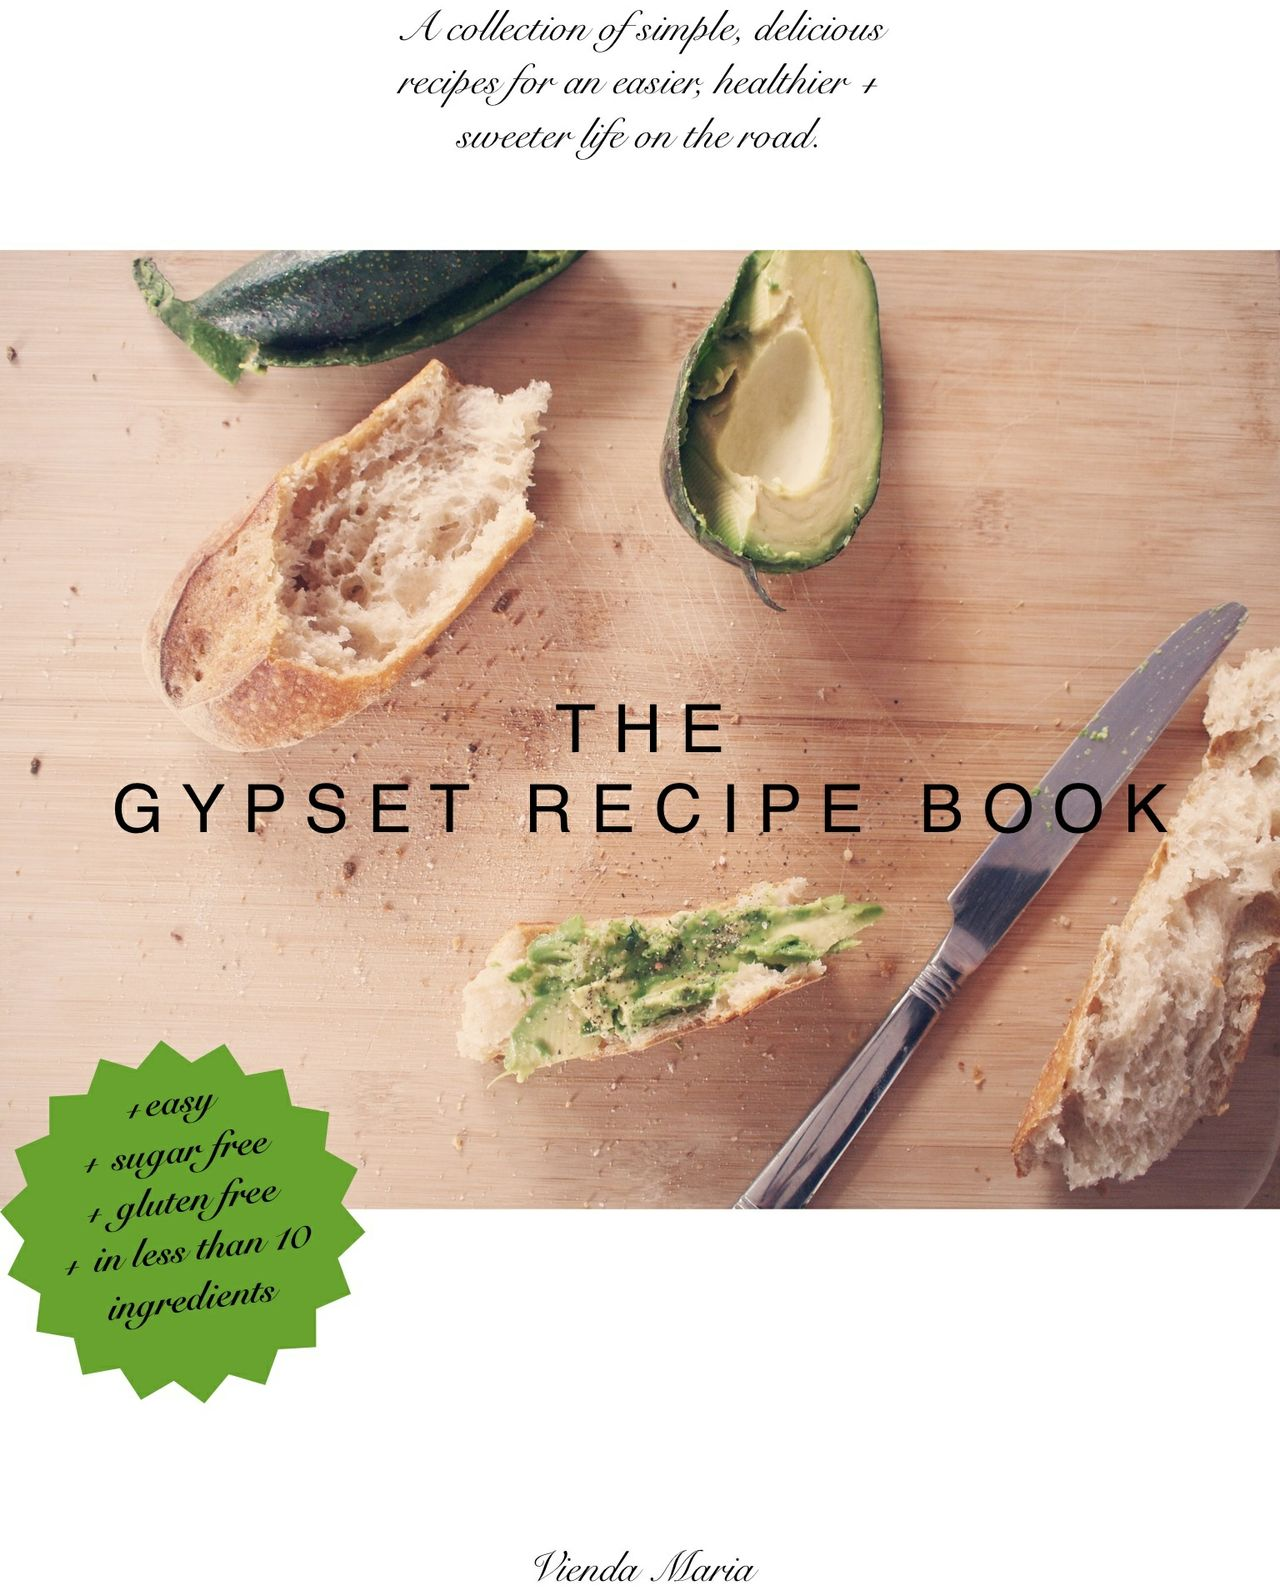 The Gypset Recipe Book